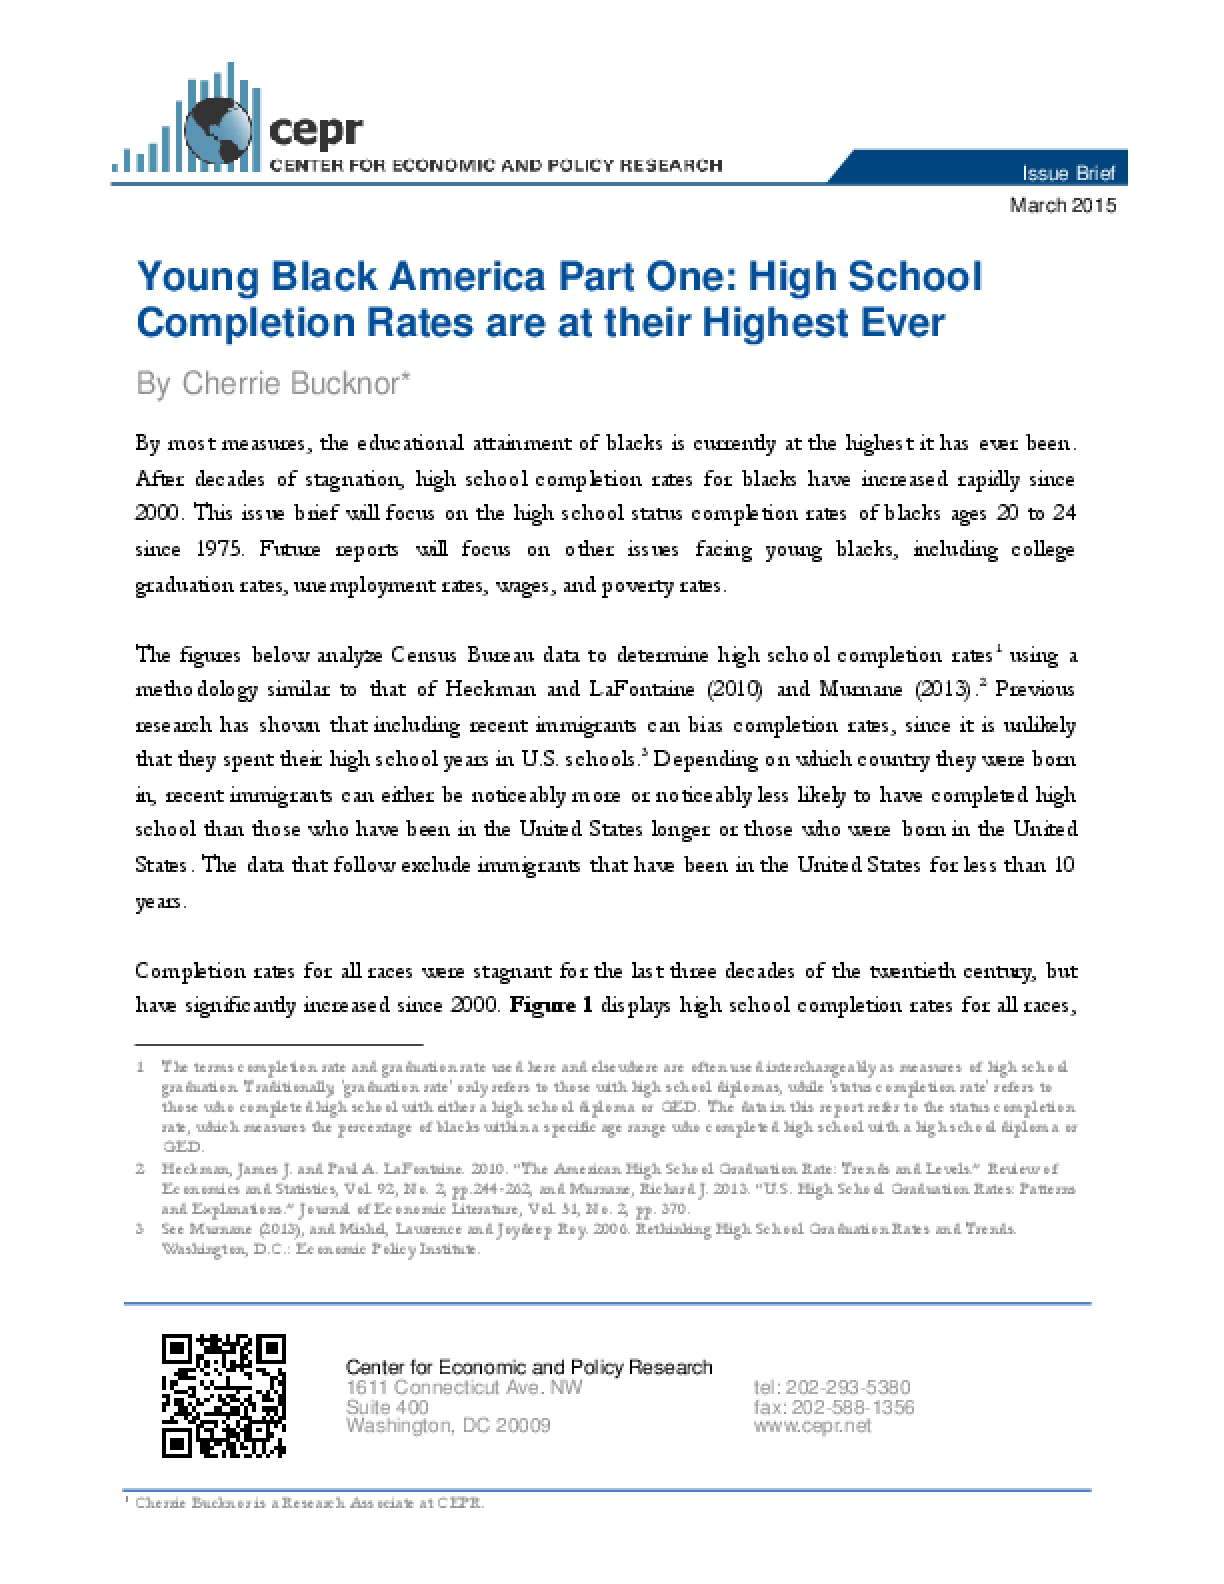 Young Black America Part One: High School Completion Rates are at their Highest Ever